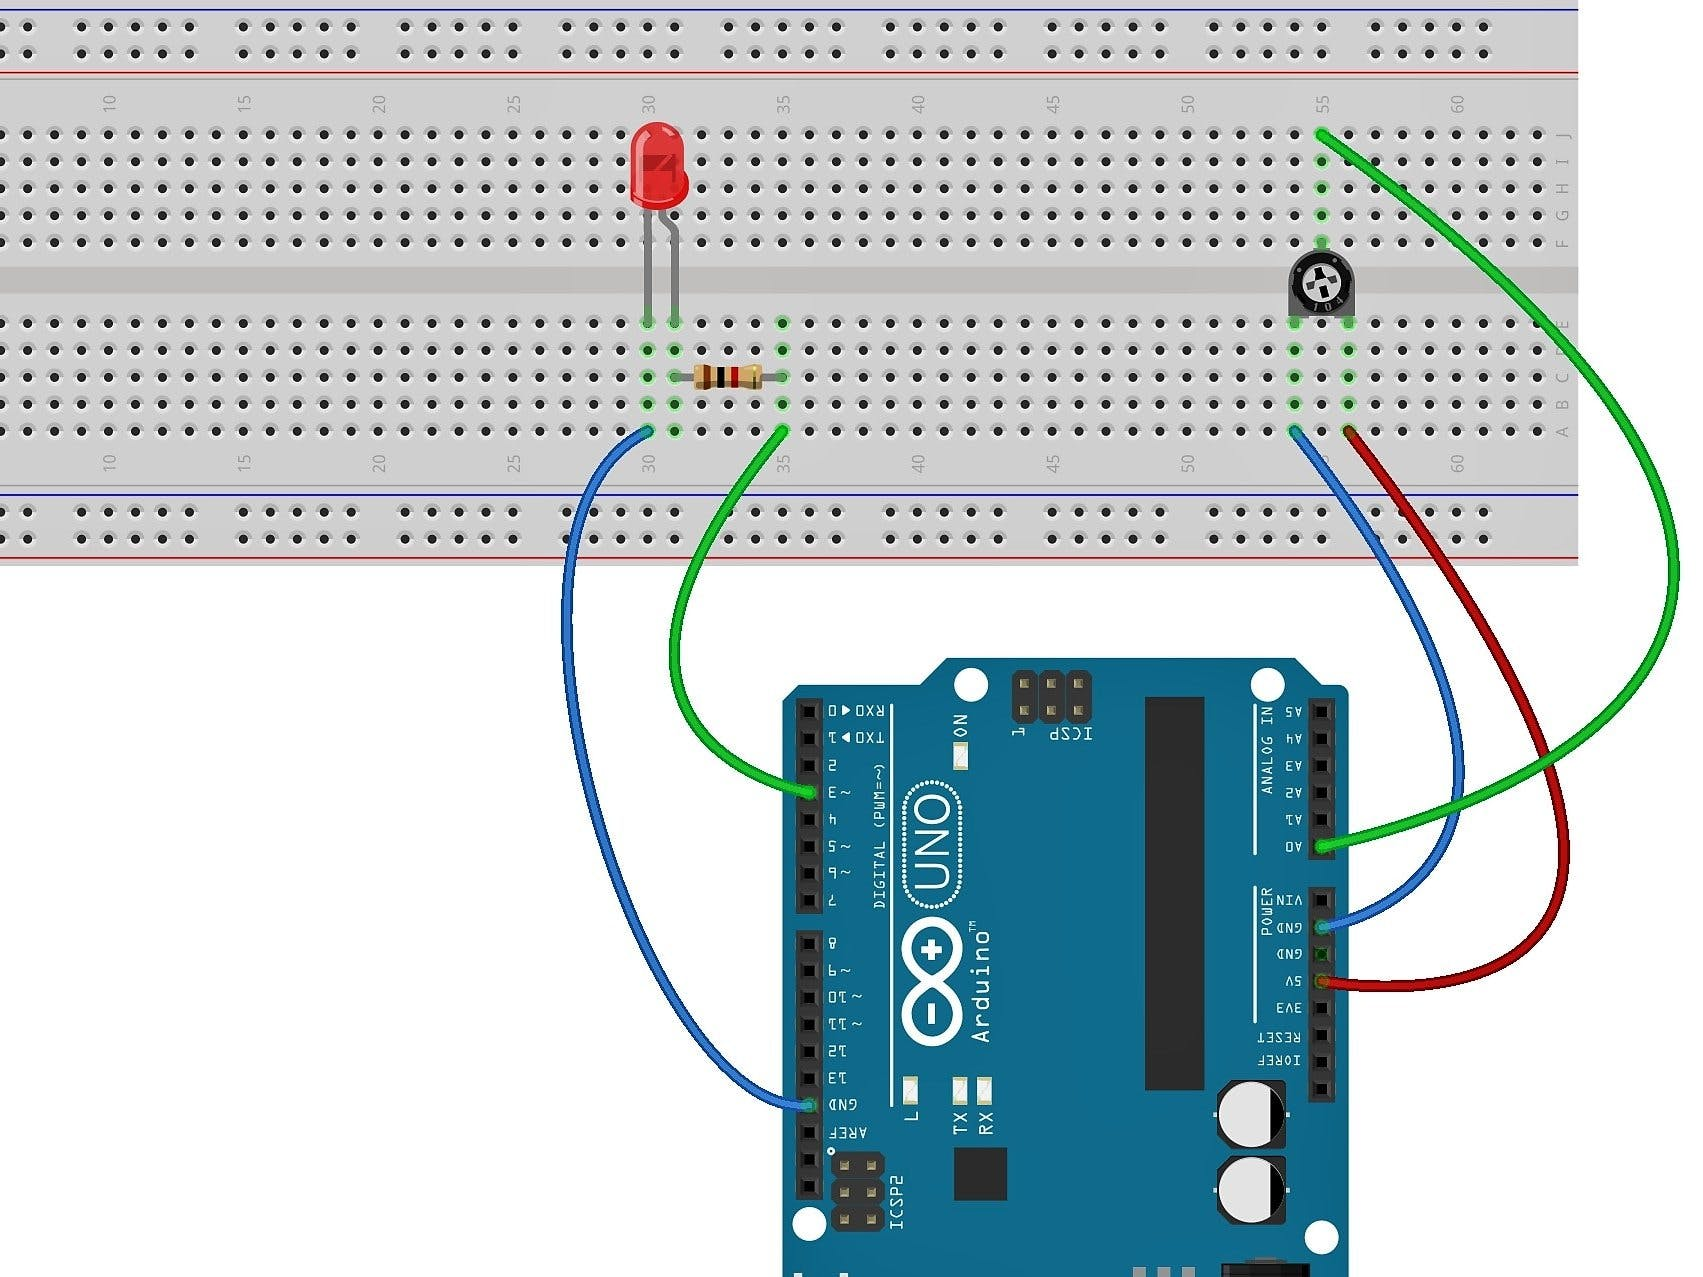 Working with a Potentiometer and an LED